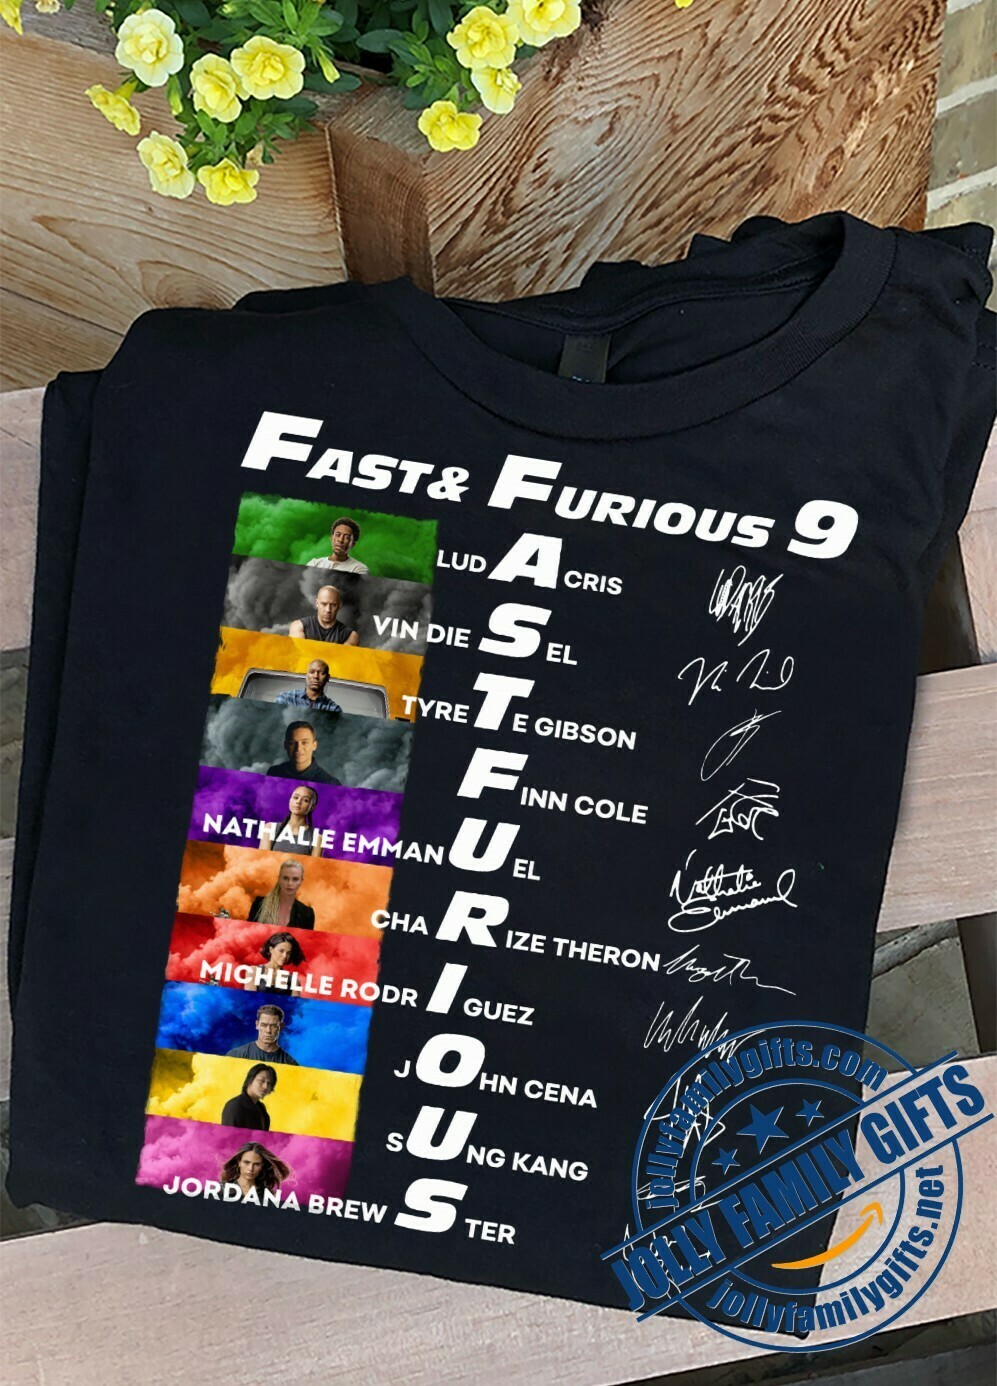 19 Years of Fast and Furious 2001 2020 Movies Signature Thank You For The Memories Awesome Gift for F&F Action Fans Love  Unisex T-Shirt Hoodie Sweatshirt Sweater Plus Size for Ladies Women Men Kids